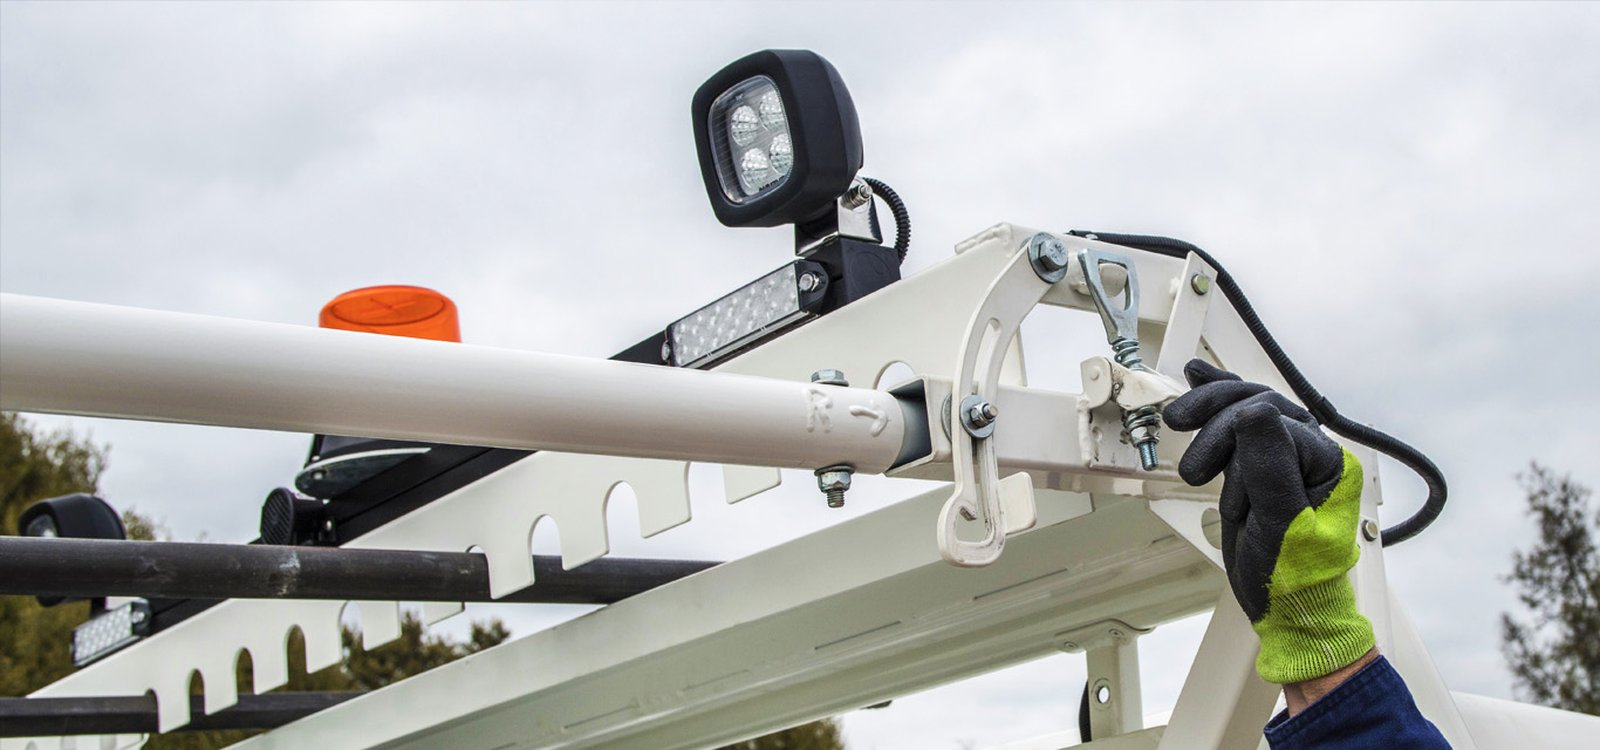 <p>The primary feature is a unique locking mechanism that secures the rod racks to the frame, which is in turn attached to the tray of the service vehicle.</p>